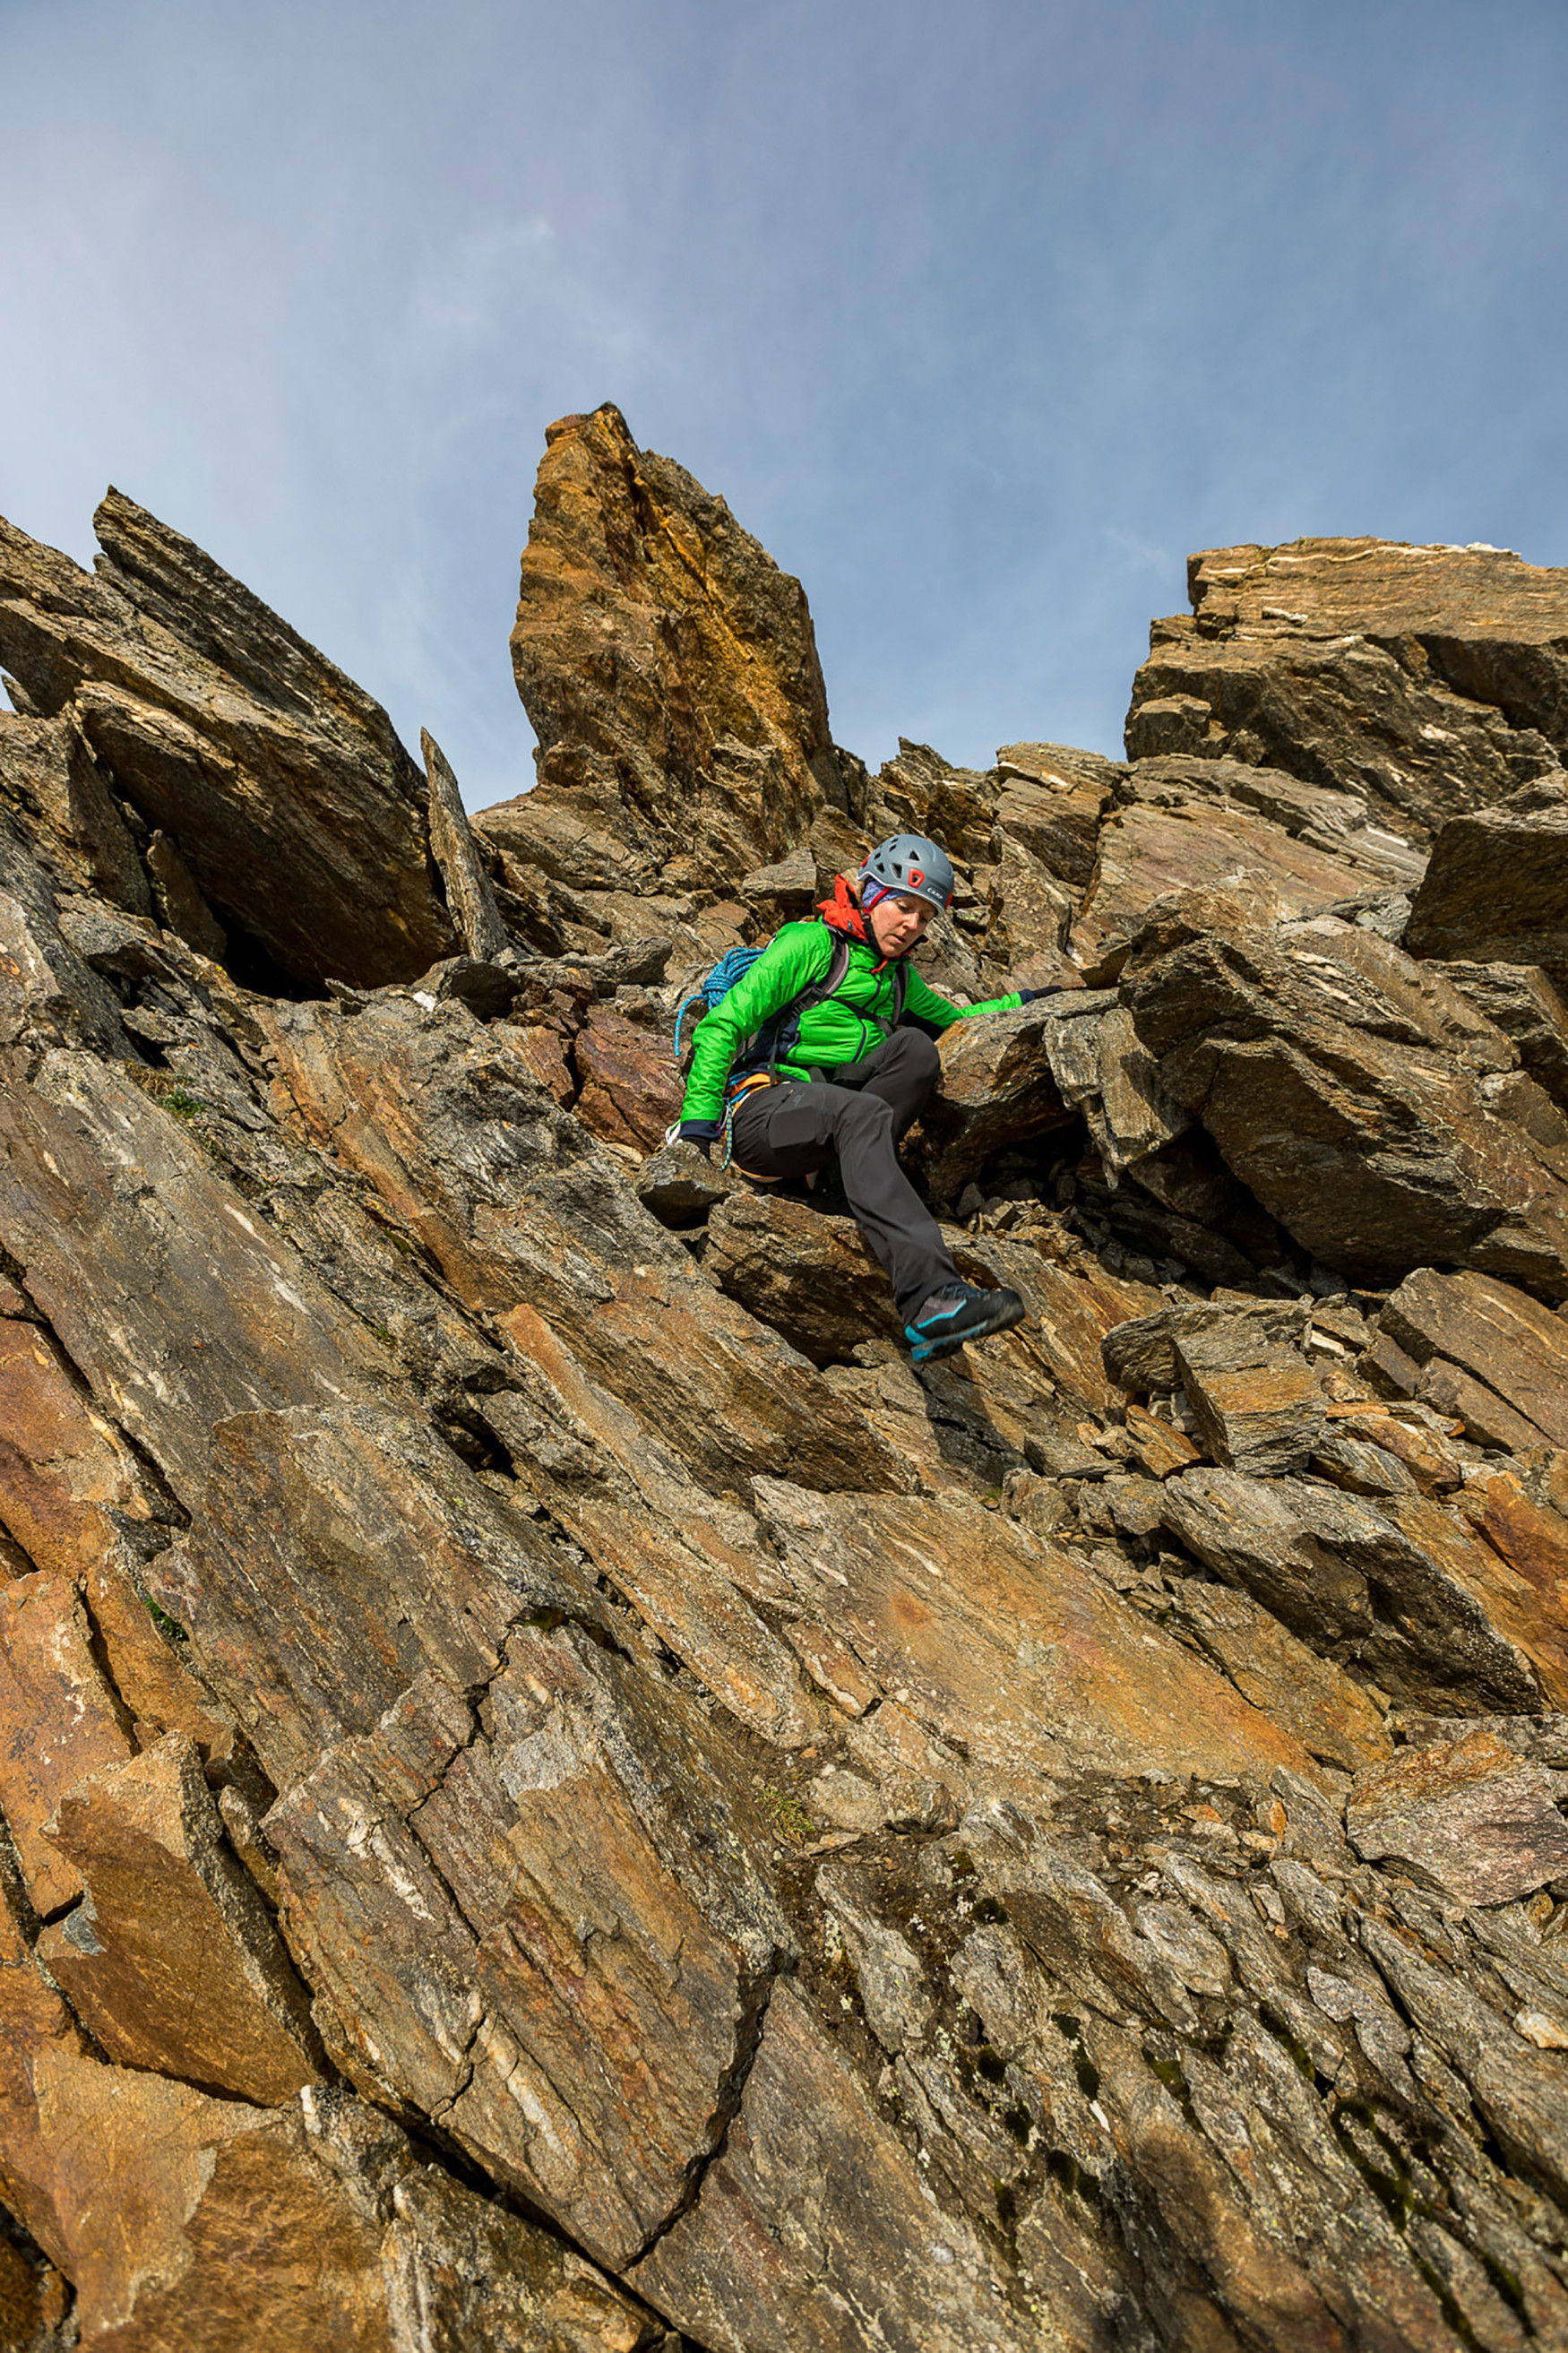 Into the mountaineering boot and up to the summit: LOWA's ALPINE PRO GTX Ws is a lightweight, robust and modern boot that is completely at home in Alpine terrain. It is also designed with the specific anatomical needs of women's feet in mind. And there are many more well-designed, functional details to make mountain-climbing even more fun. Don't hesitate. The mountains are waiting!